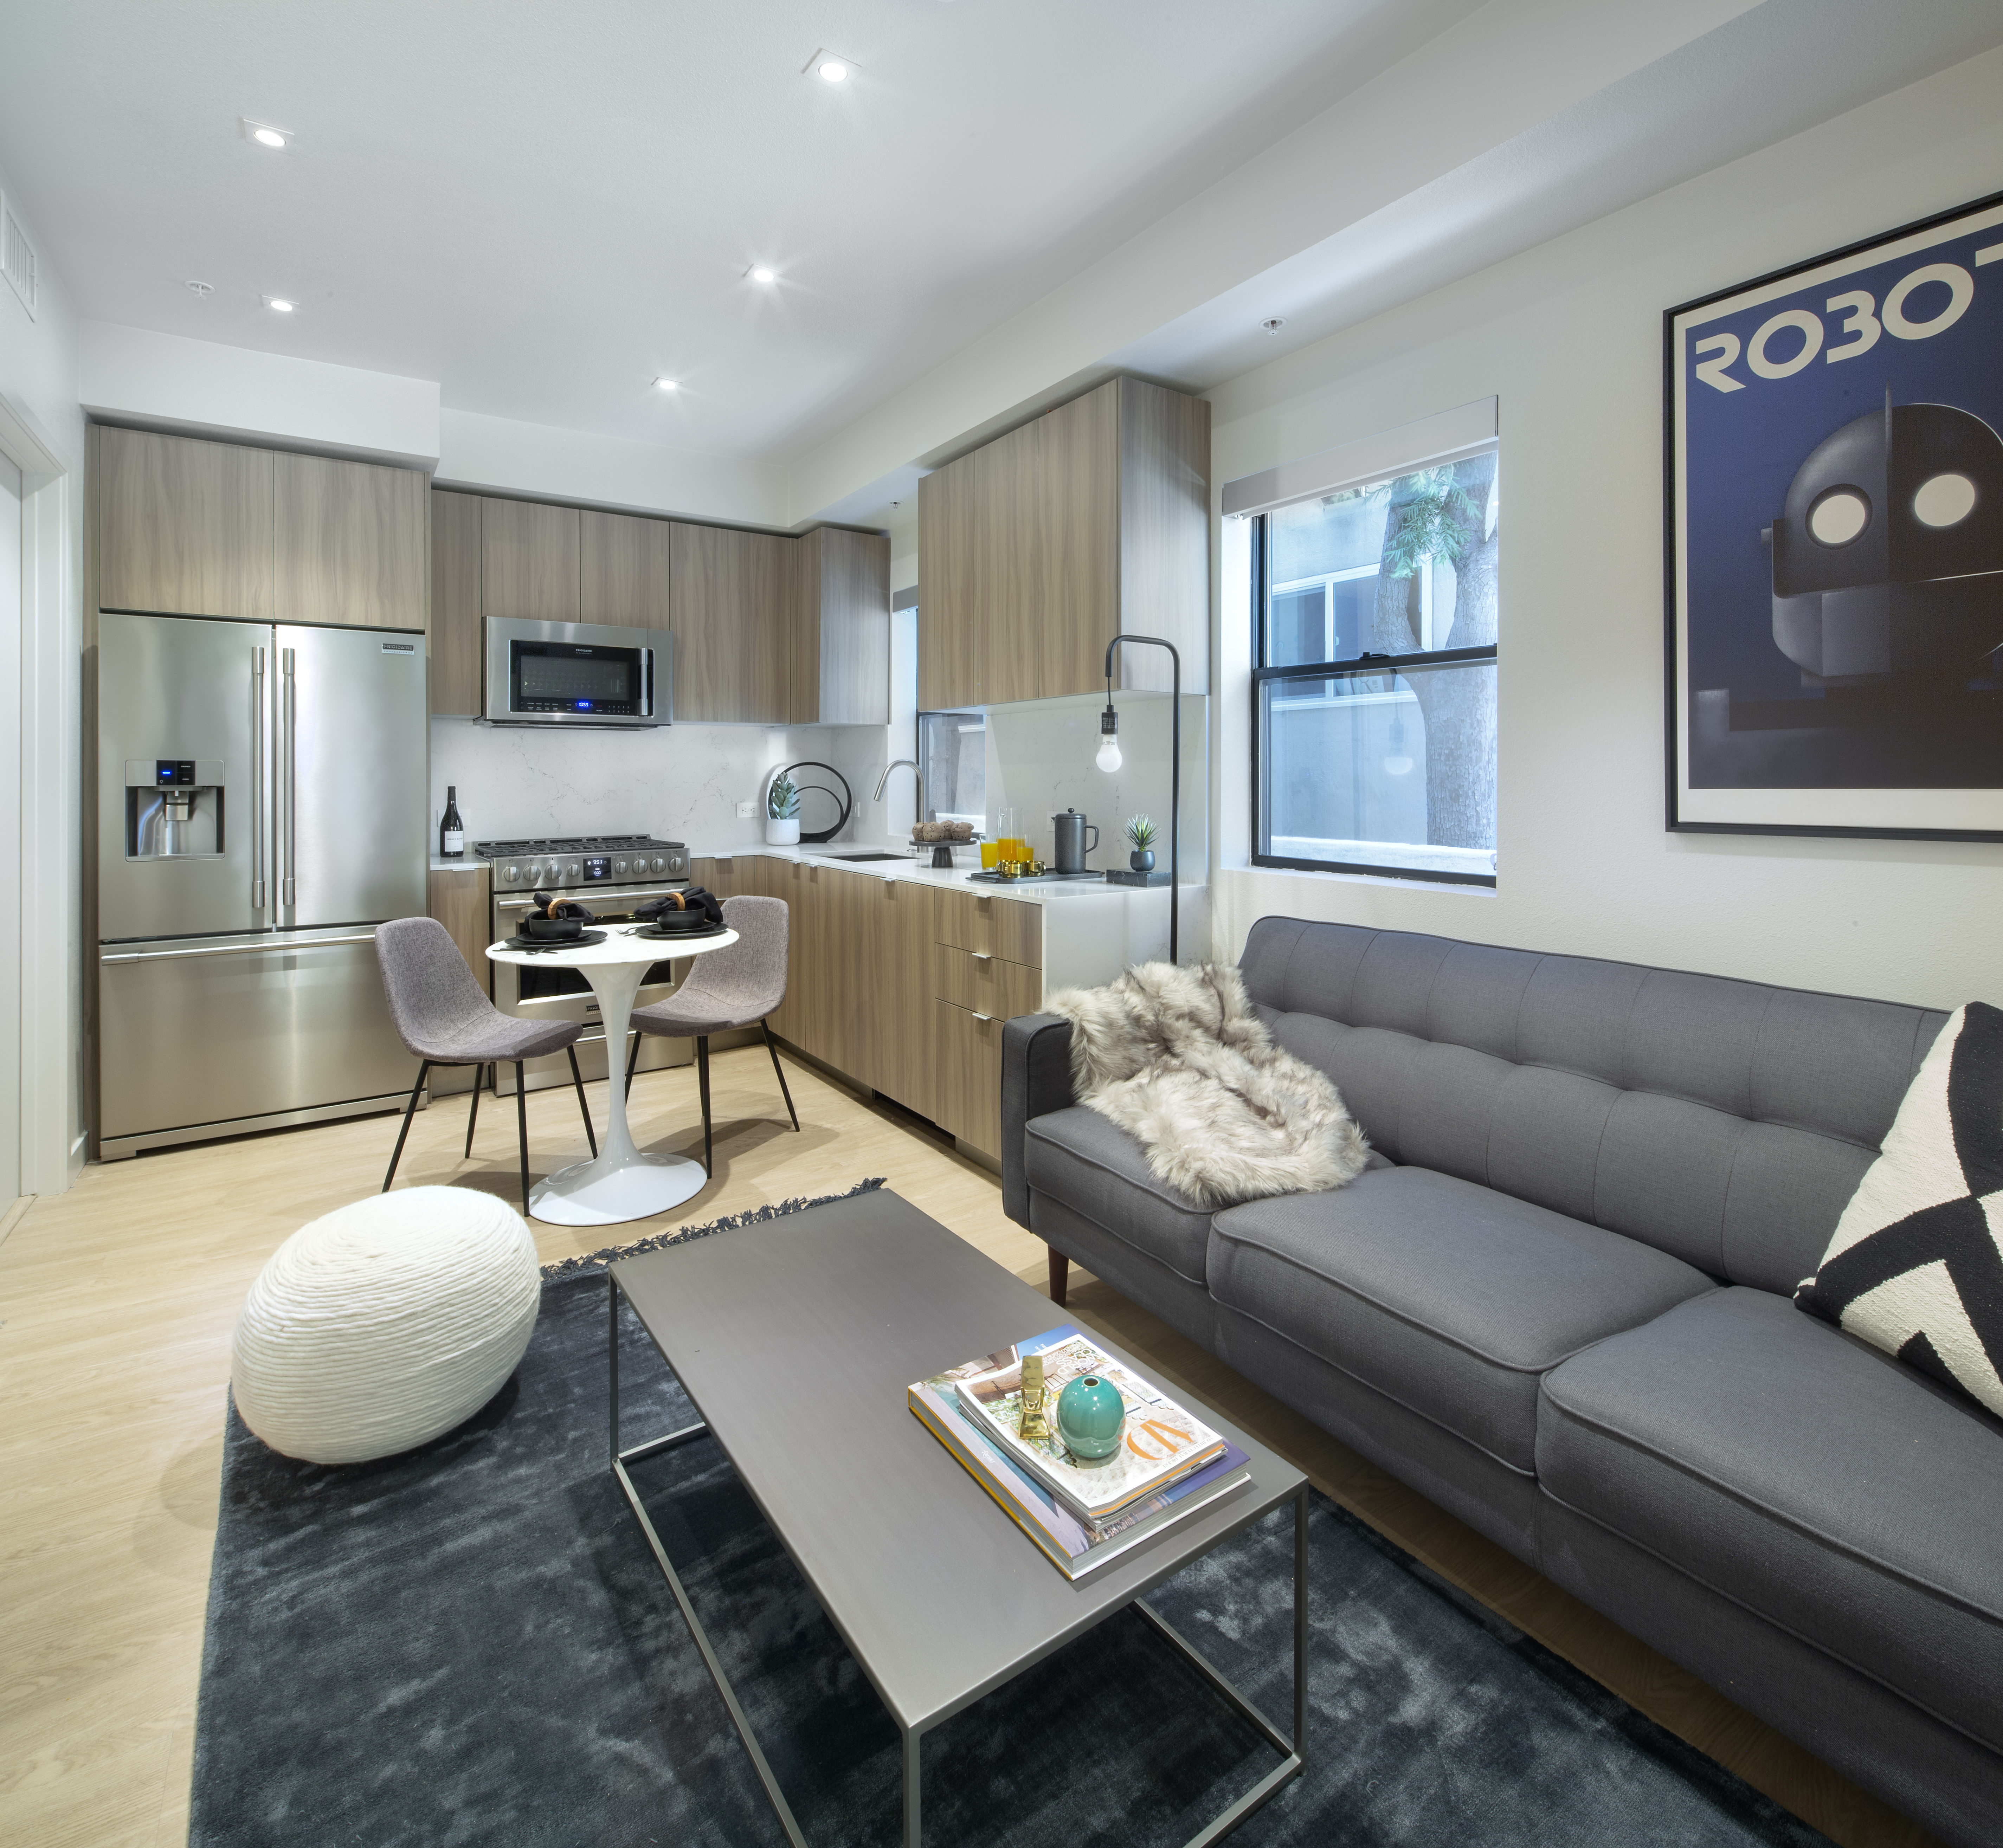 08. LuXe at 11649 for rent